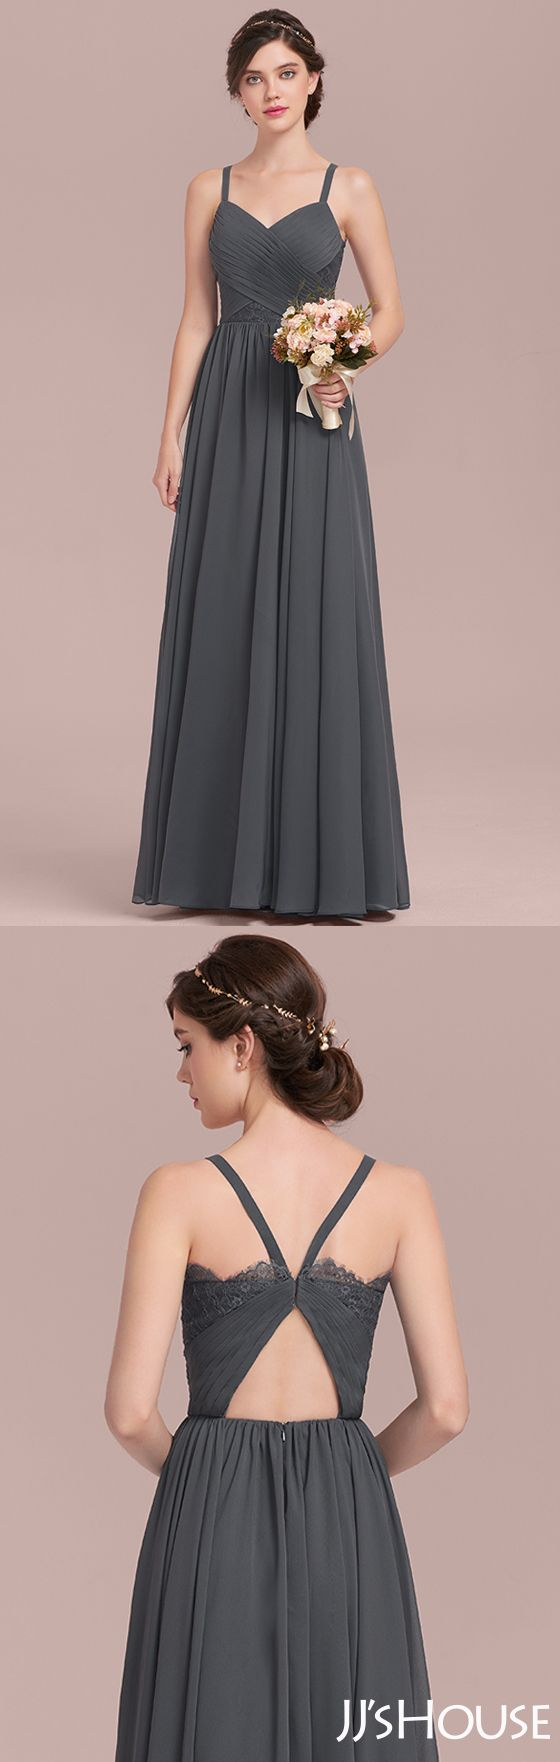 Classic color and eye-catching back design made this bridesmaid dress attractive! #JJsHouse #Bridesmaid